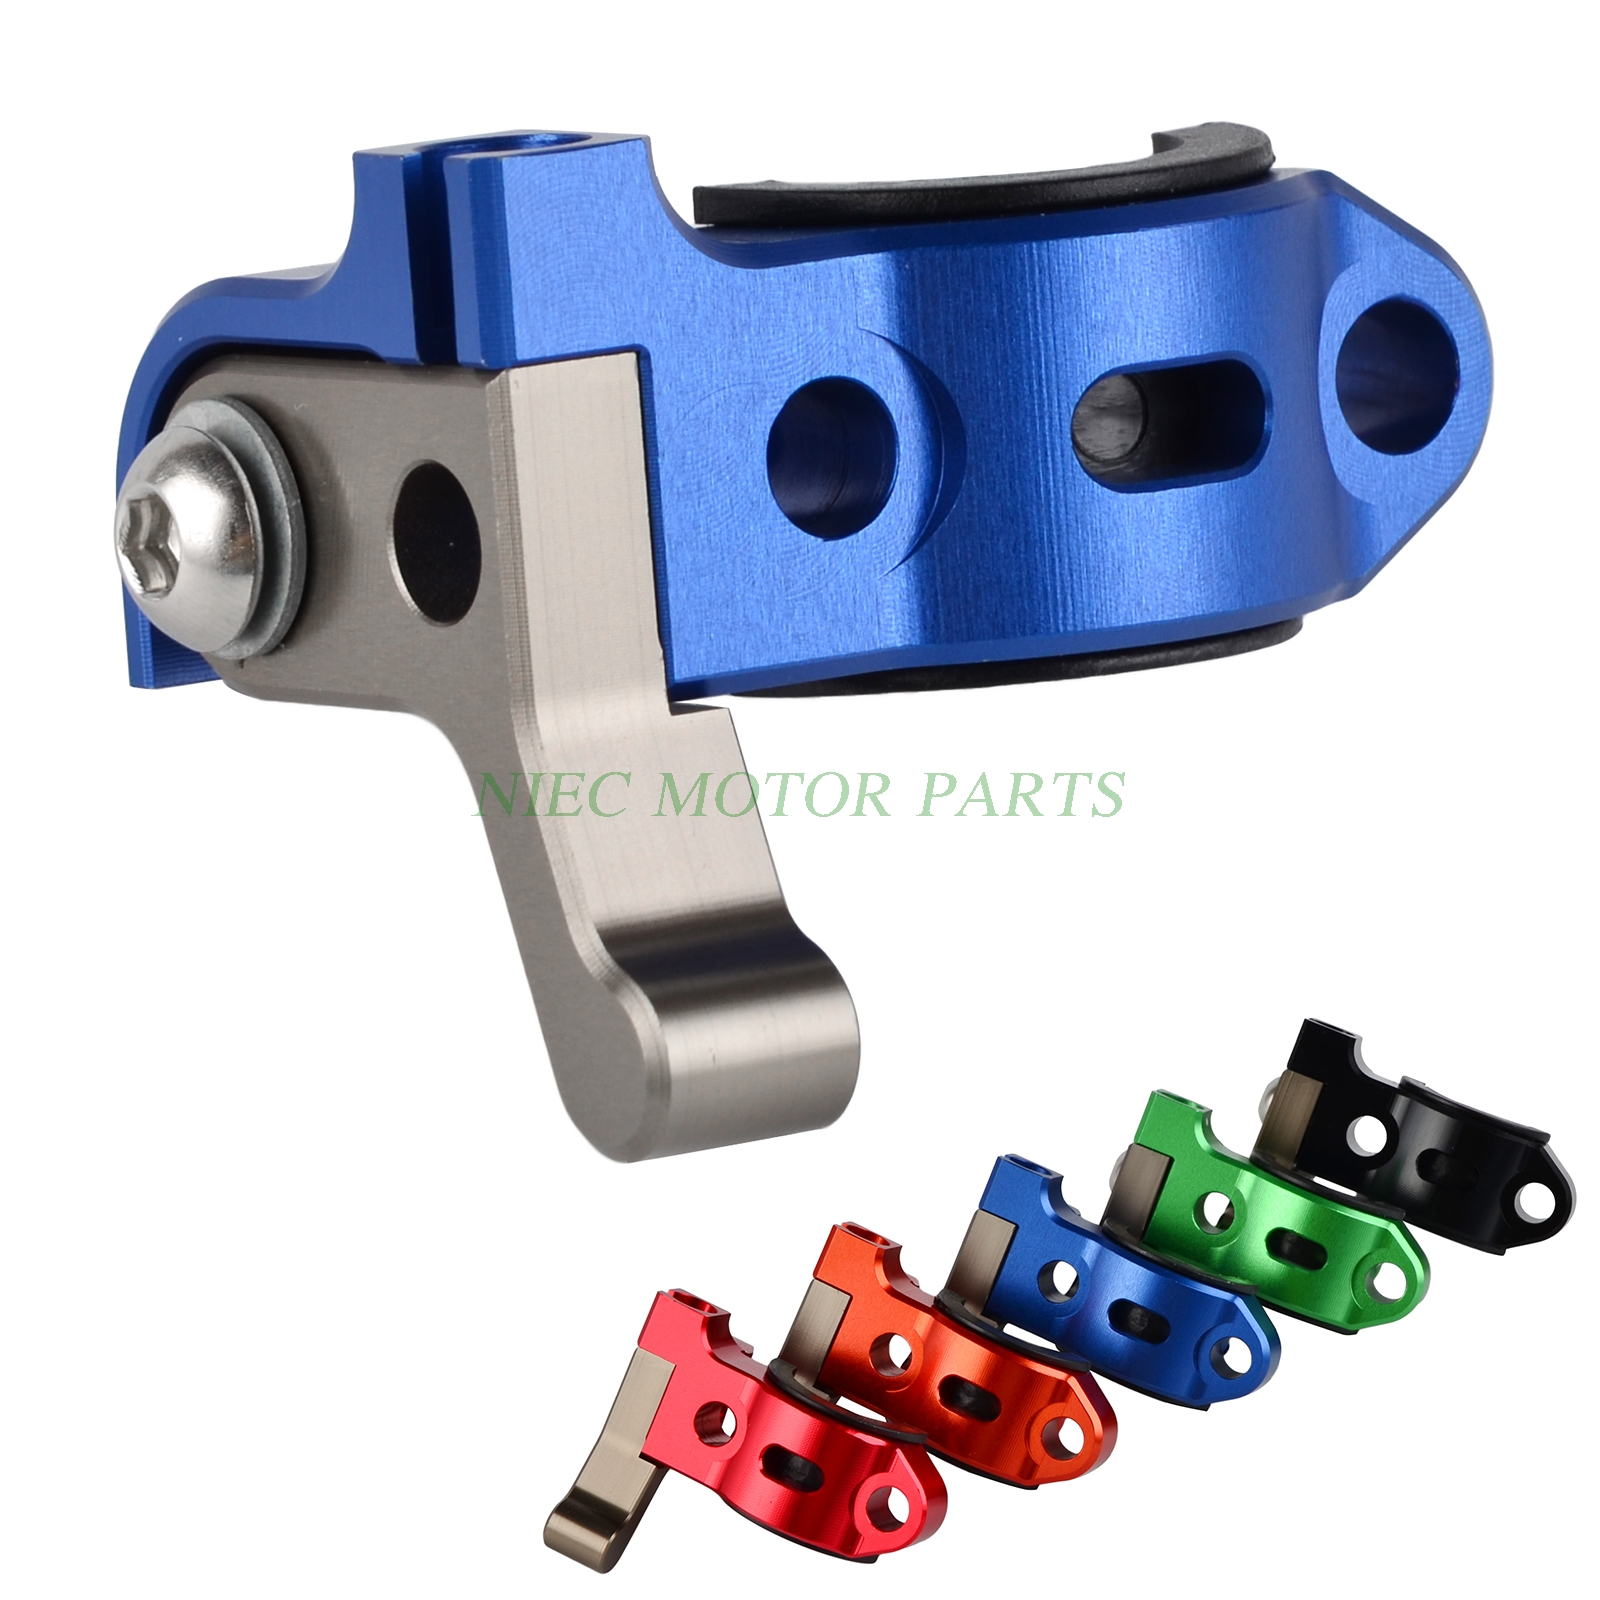 H2CNC Rotating Bar Clamp Hot Start Lever For Yamaha WR250 F WR250R WR250F WR426F WR450F TTR250 YZ125 250 250F 426F YZ450F  YZ85